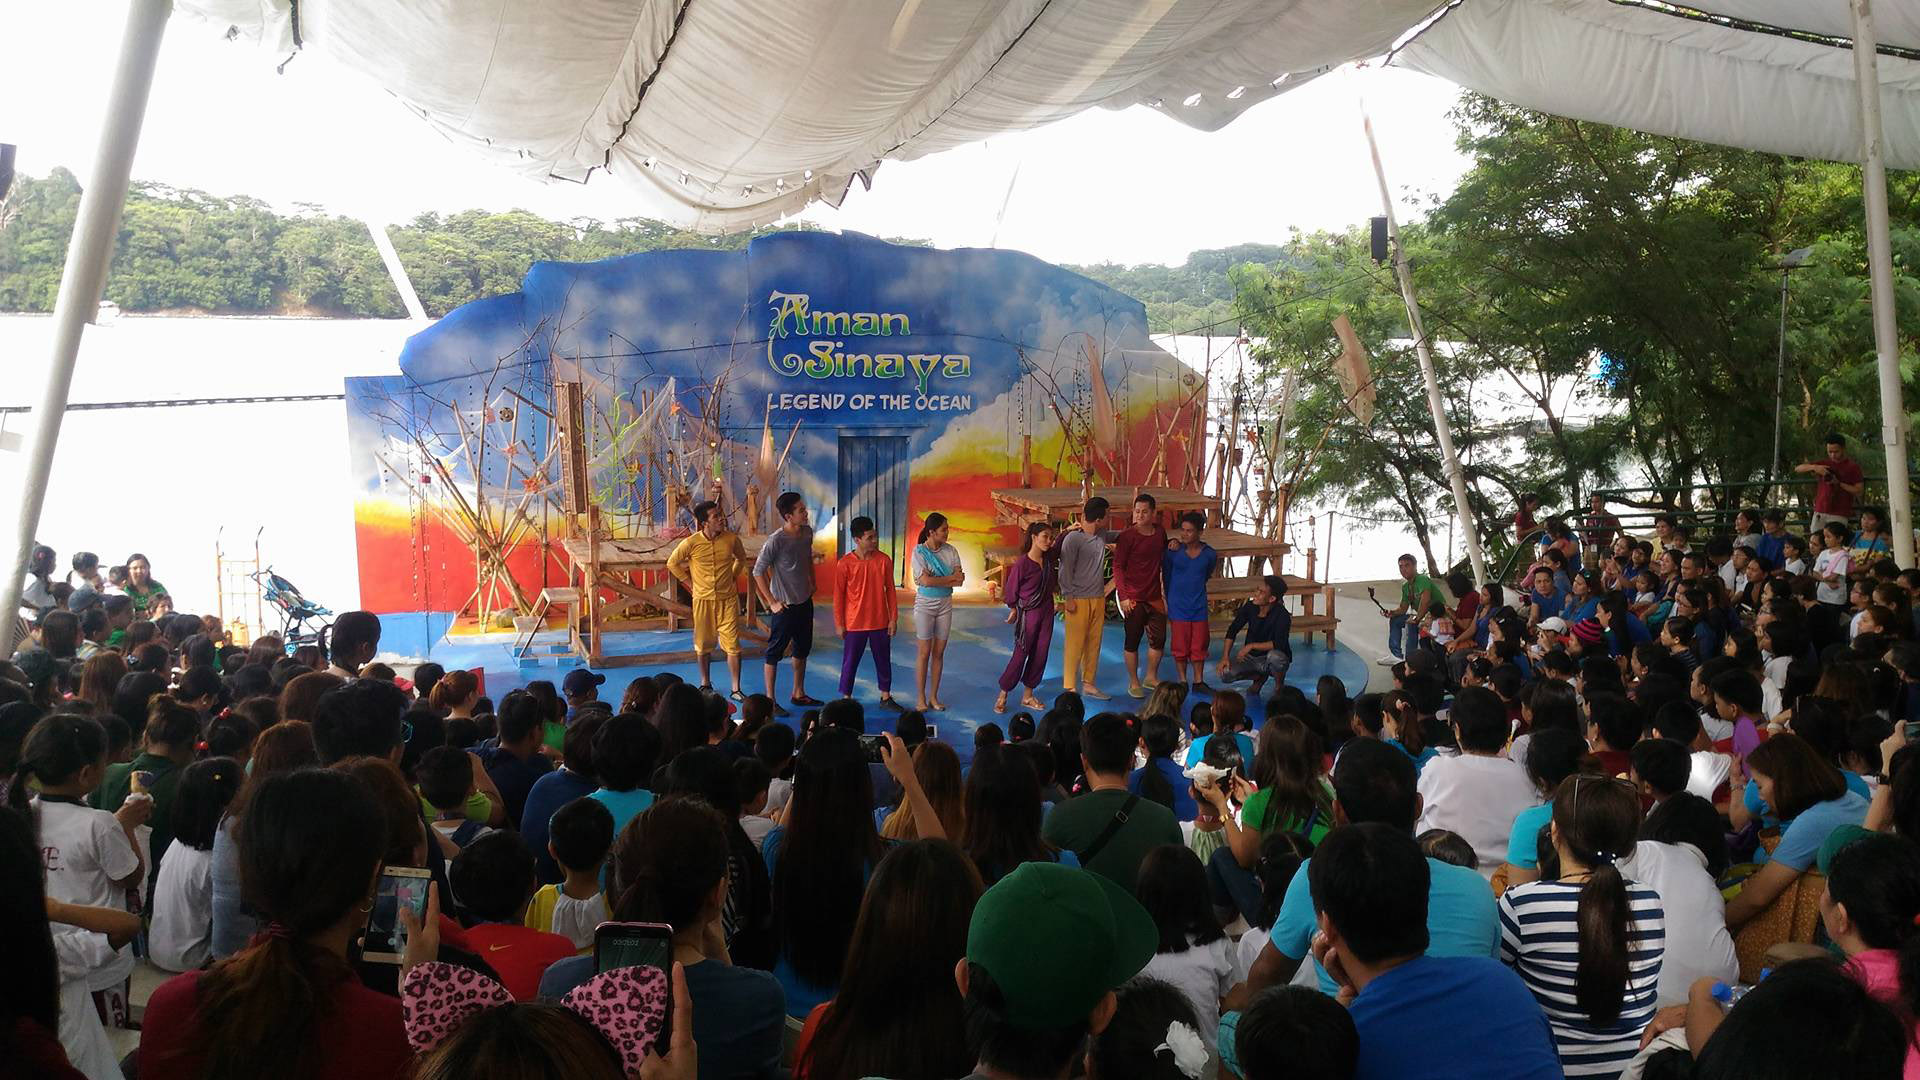 Subic Ocean Adventure Aman Sinaya Legend of the Ocean play